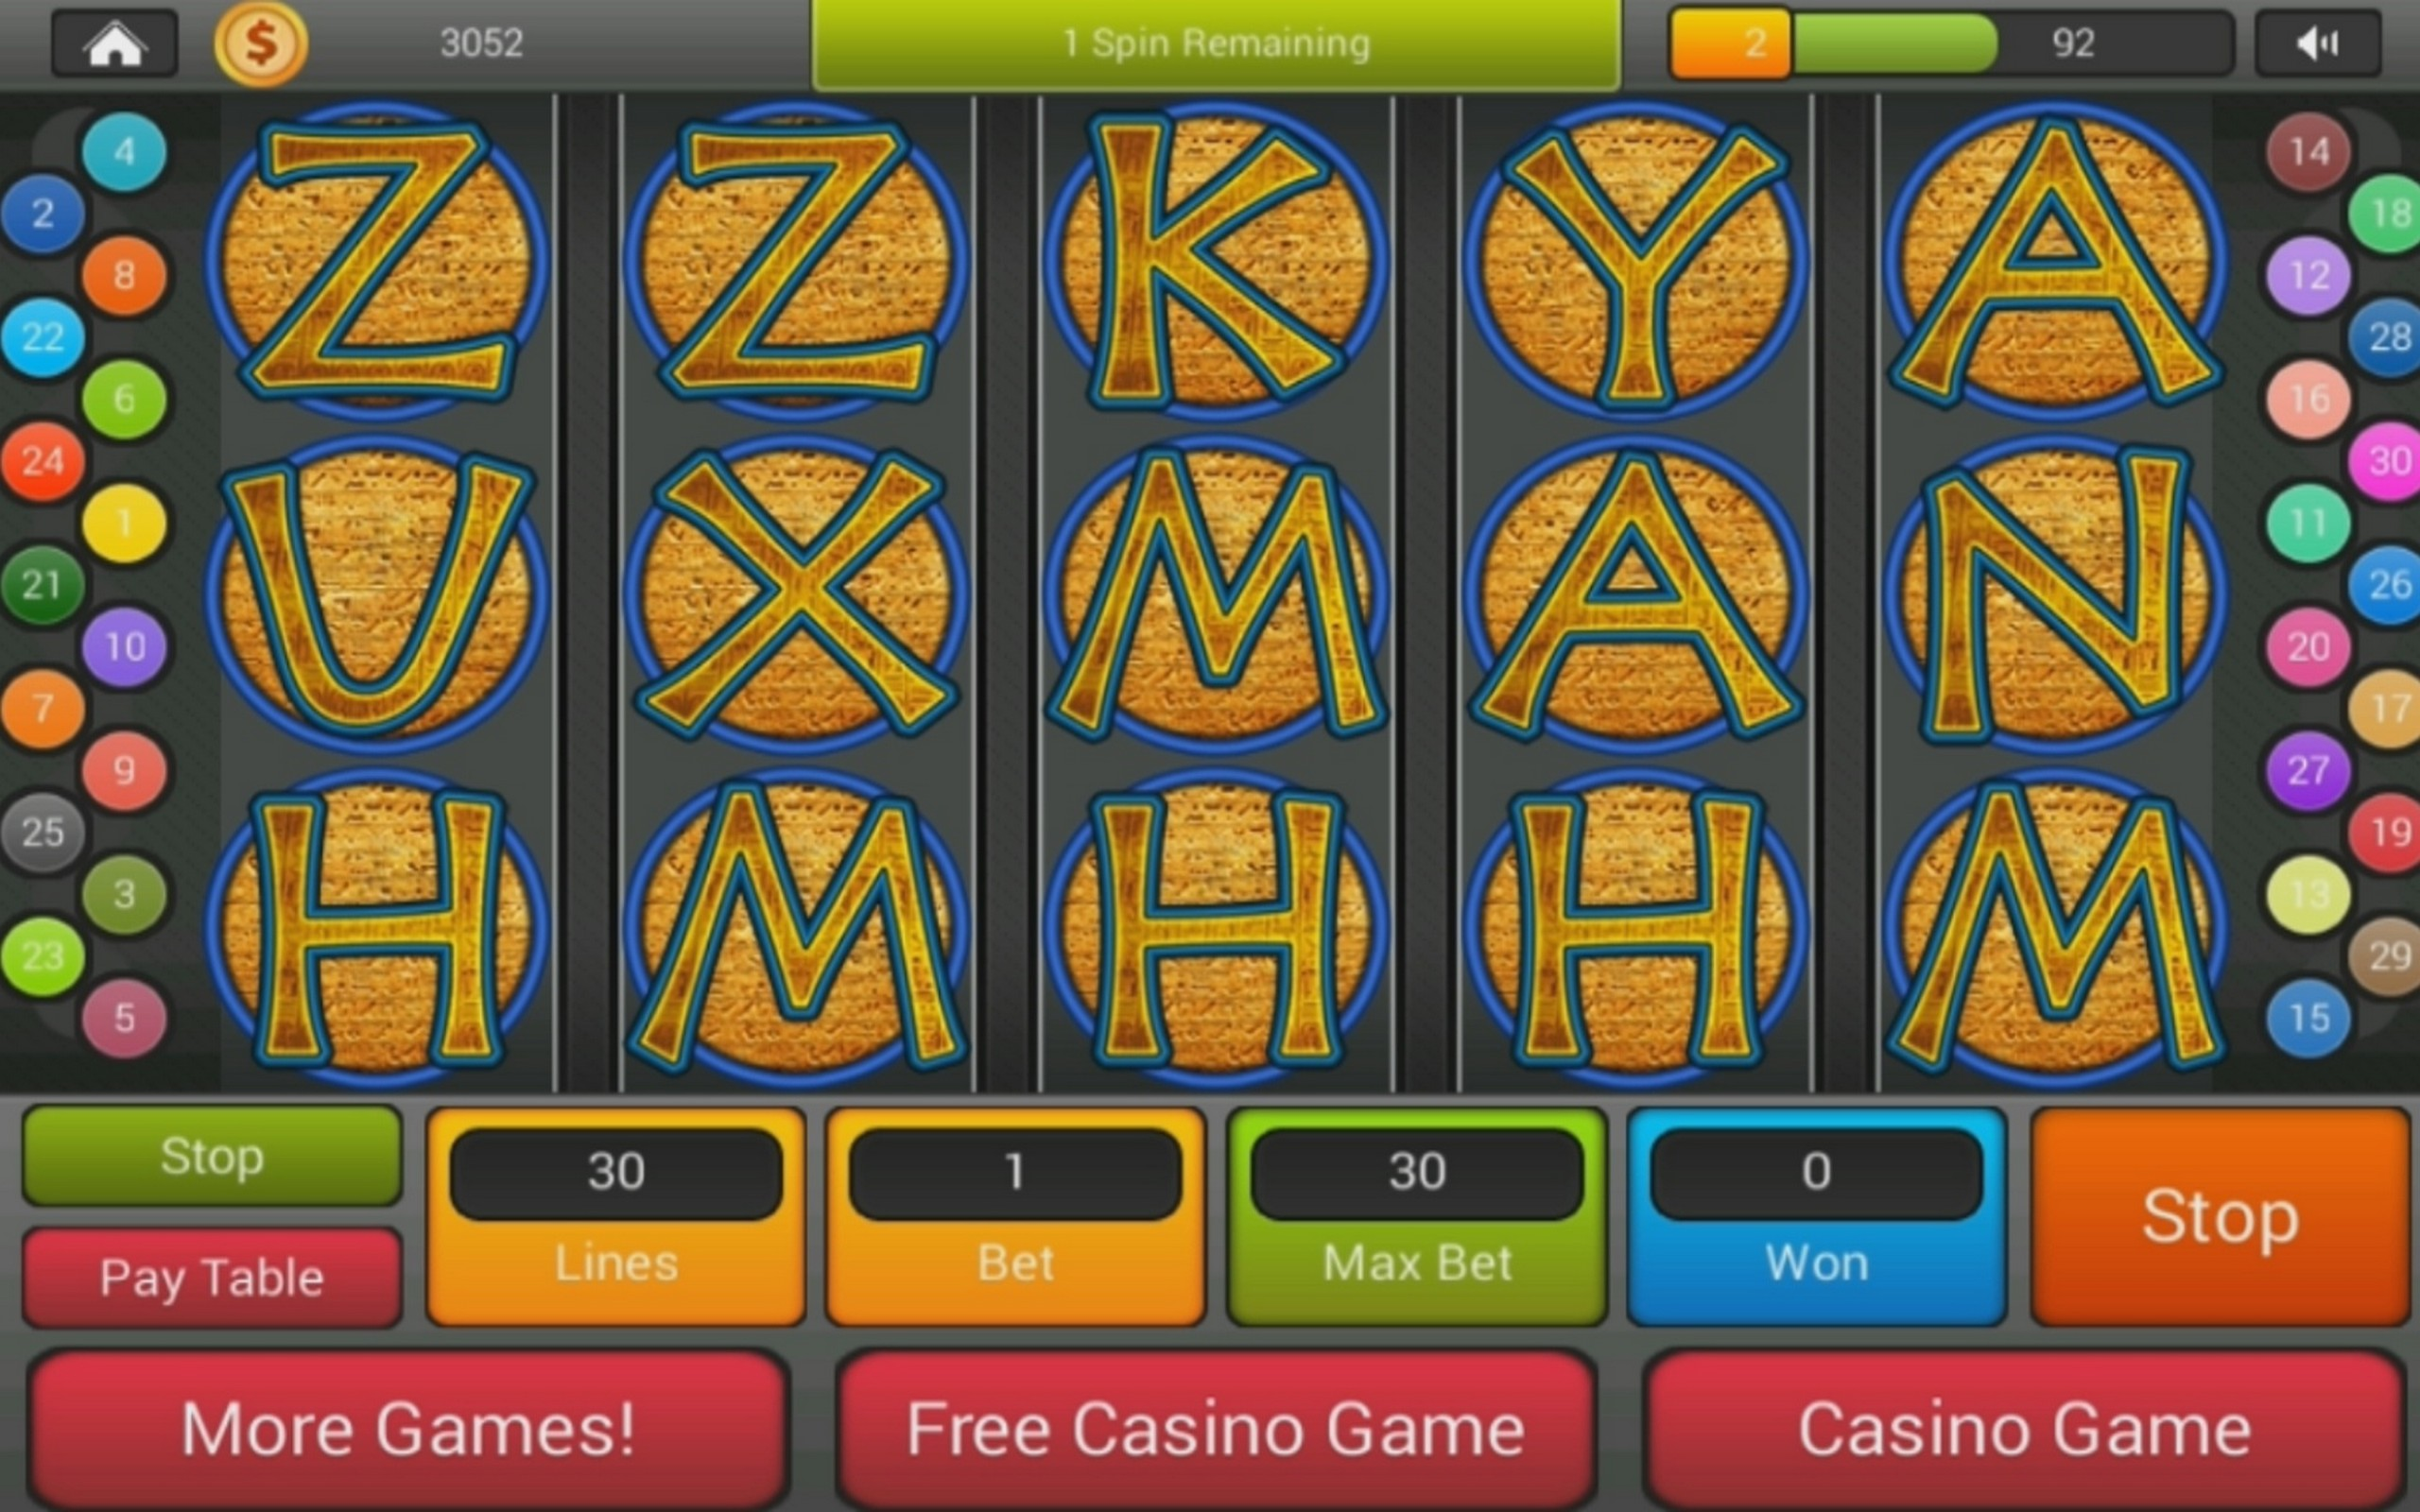 Hello Casino Casino Review - Hello Casino™ Slots & Bonus | https://www.hellocasino.com/